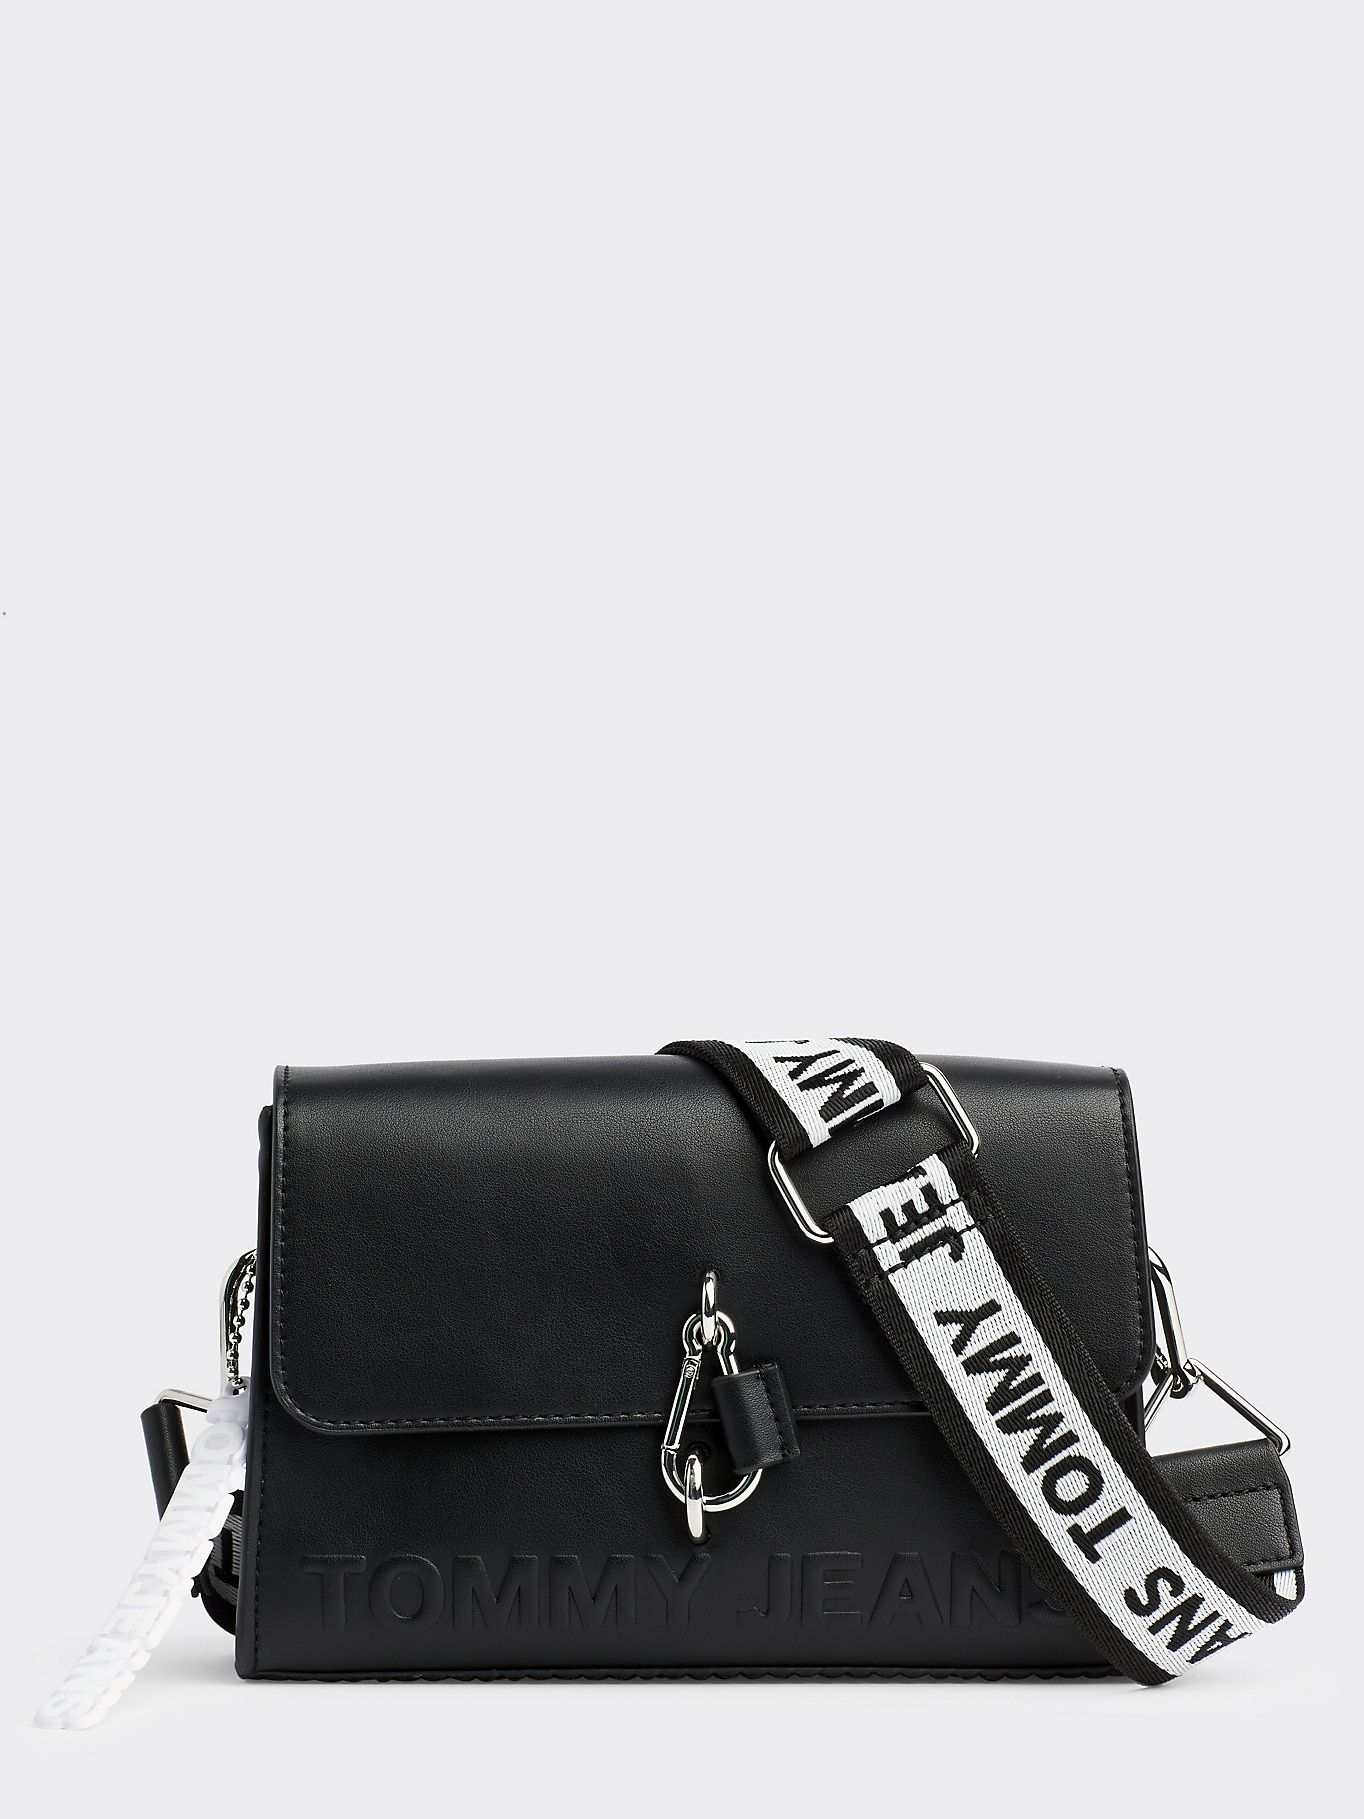 Shopping > sac bandouliere tommy hilfiger, Up to 76% OFF